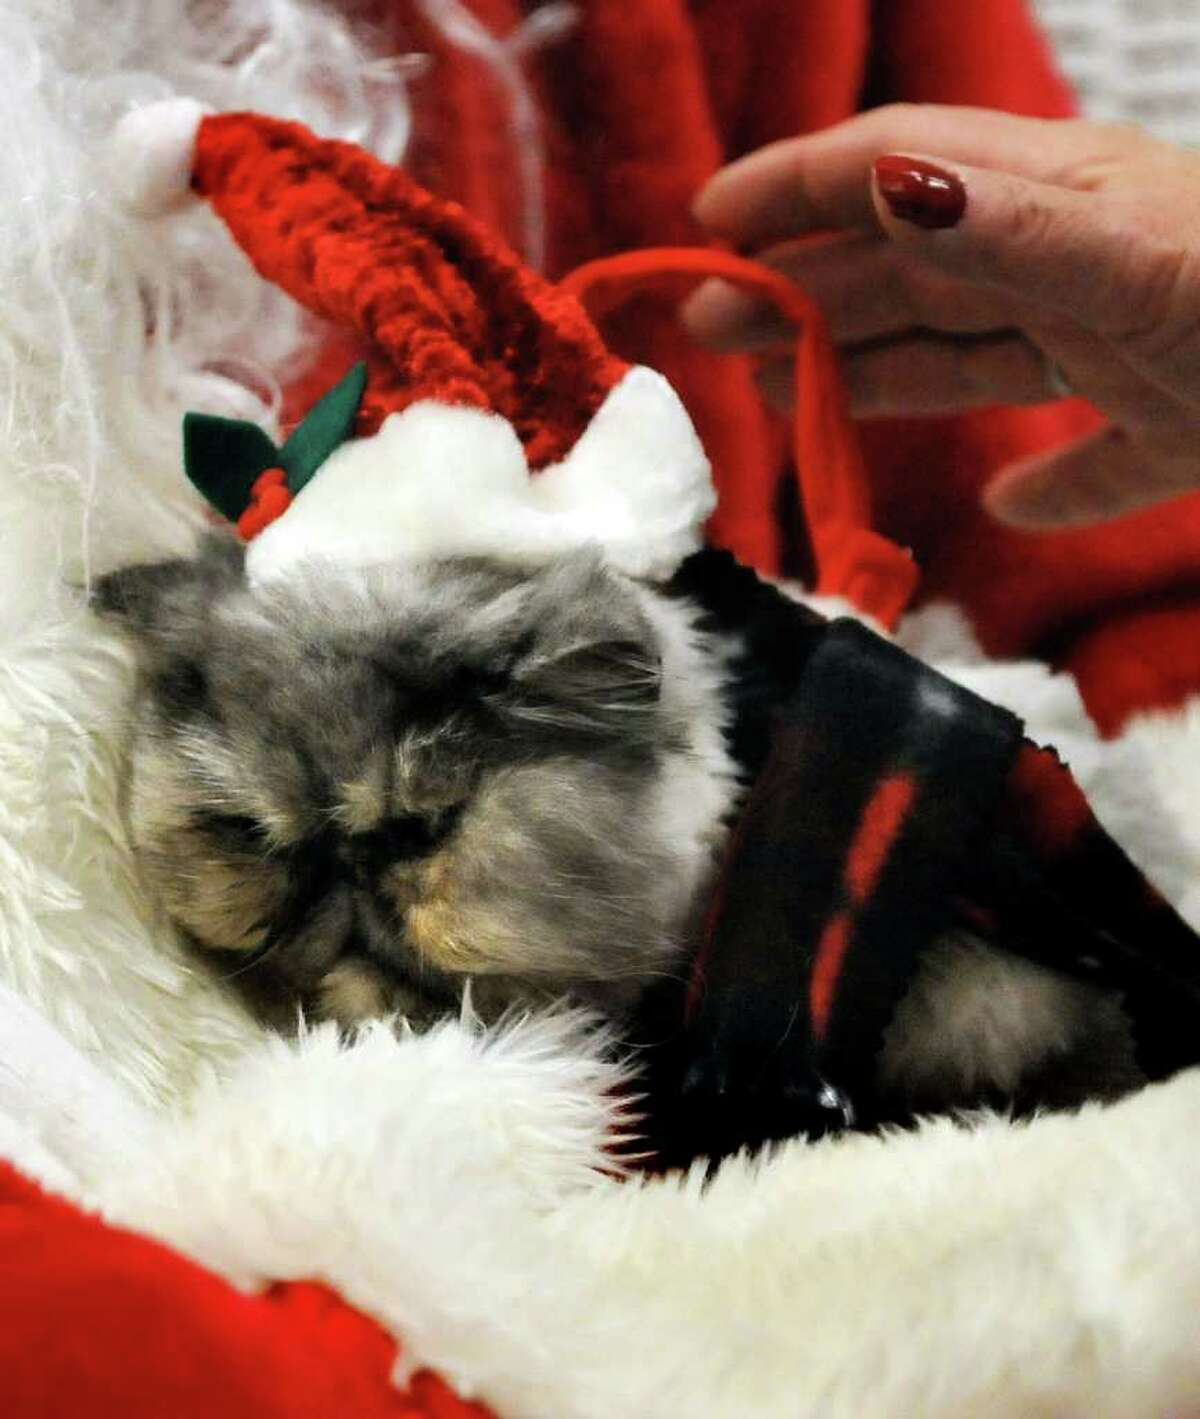 Daisy Doolittle, a rescued Persian owned by Debbie Zalondek of Schenectady, has her picture taken with Santa Claus on Saturday, Dec. 4, 2010, at the Animal Protective Foundation in Glenville, N.Y. Proceeds from the pictures, raffle and bake sale will benefit the APF?s spay/neuter and adoption programs. (Cindy Schultz / Times Union)